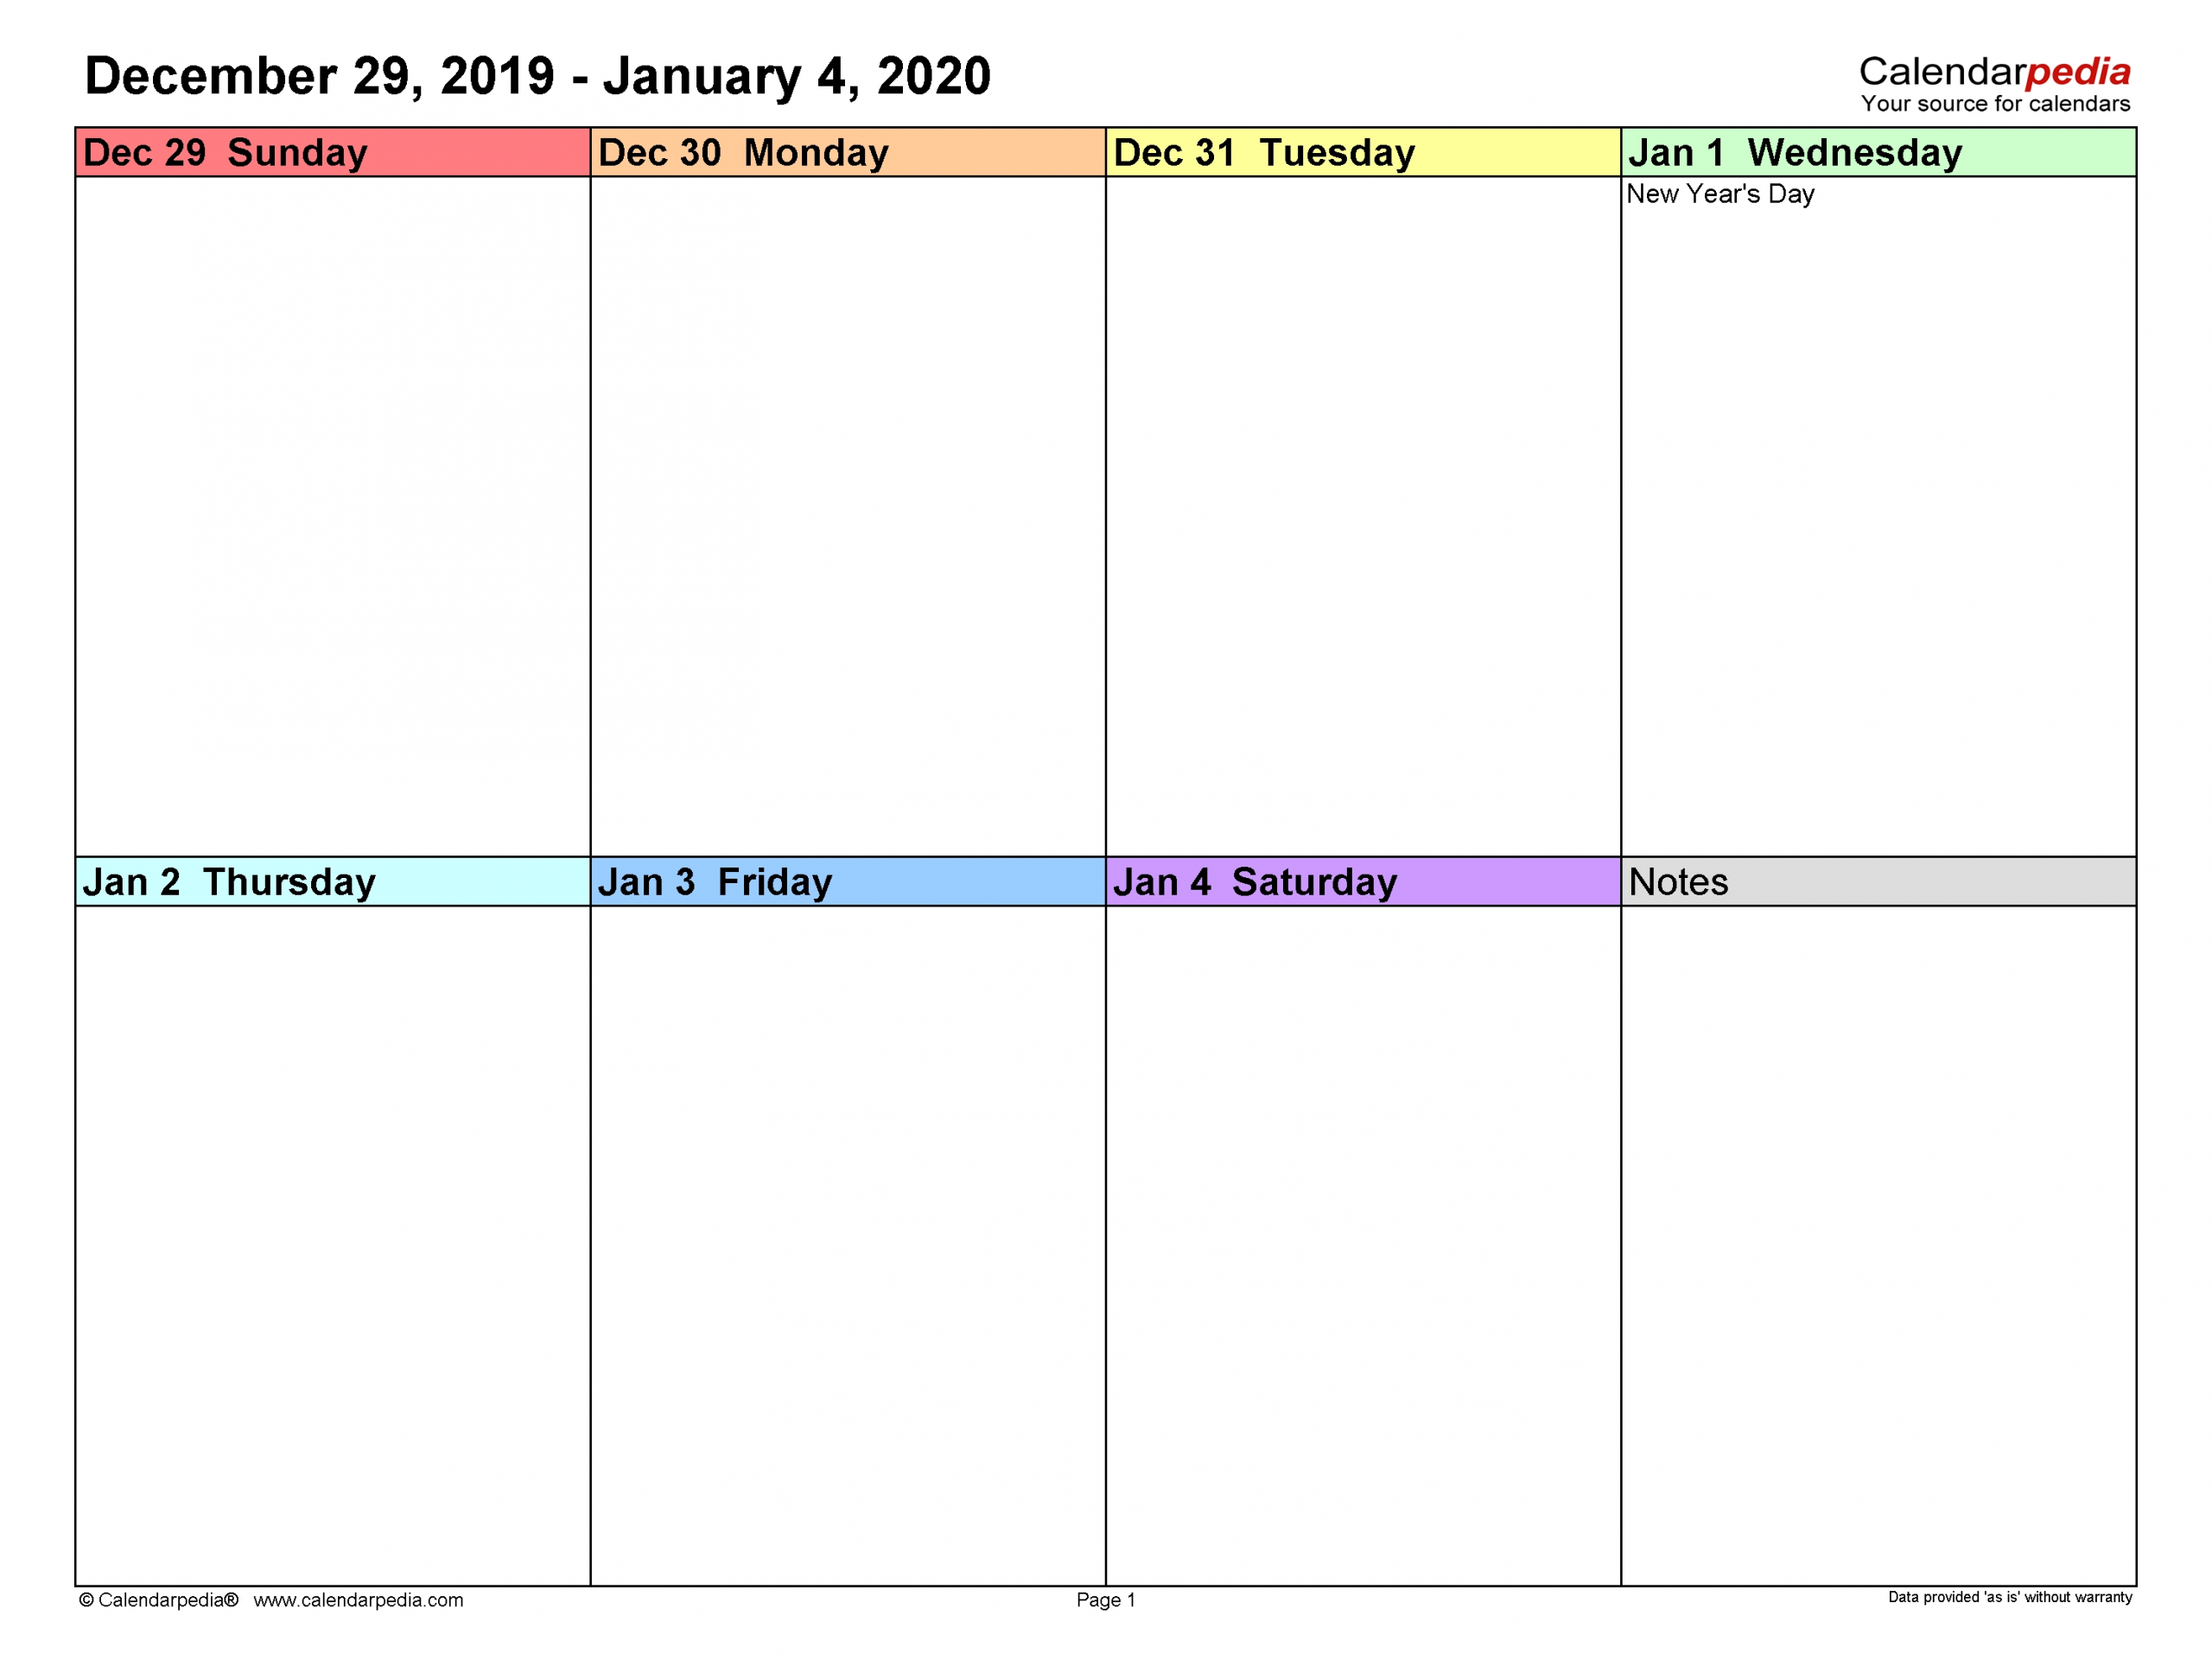 Weekly Calendars 2020 For Word - 12 Free Printable Templates